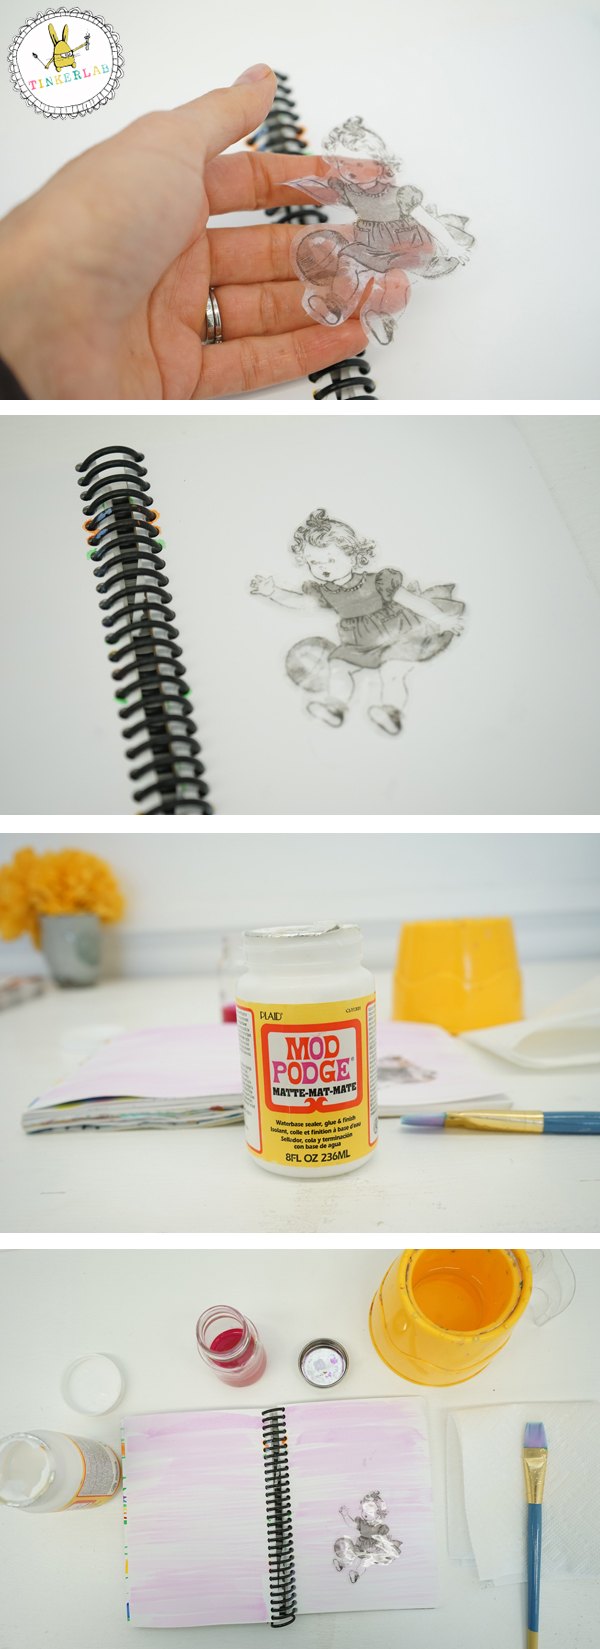 Easy clear tape image transfer technique with mod podge | TinkerLab.com